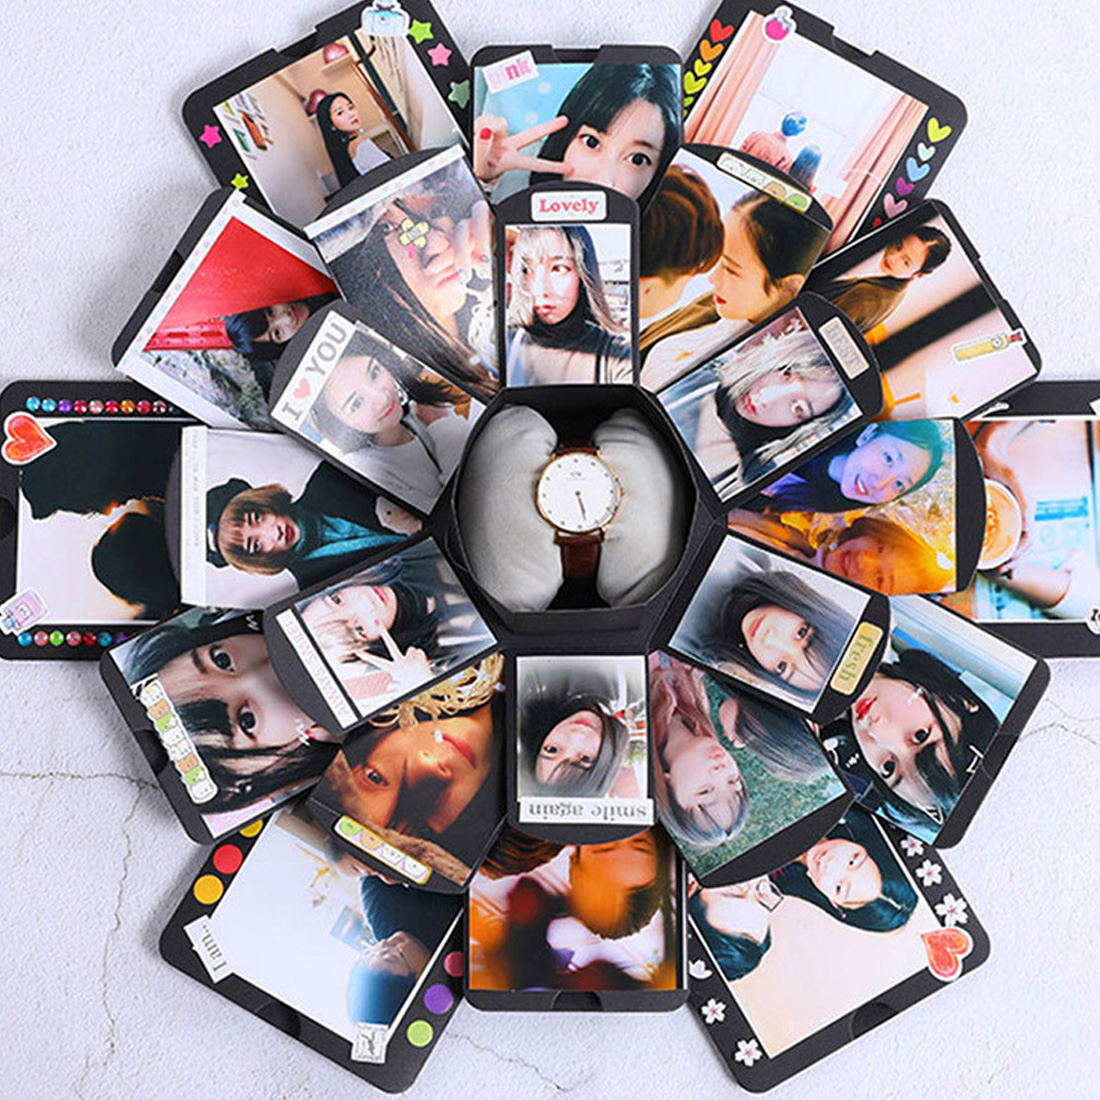 Memory Surprise Explosion Couple Box Love Memory DIY Photo Album Anniversary Christmas Gift Valentine's Day Gifts